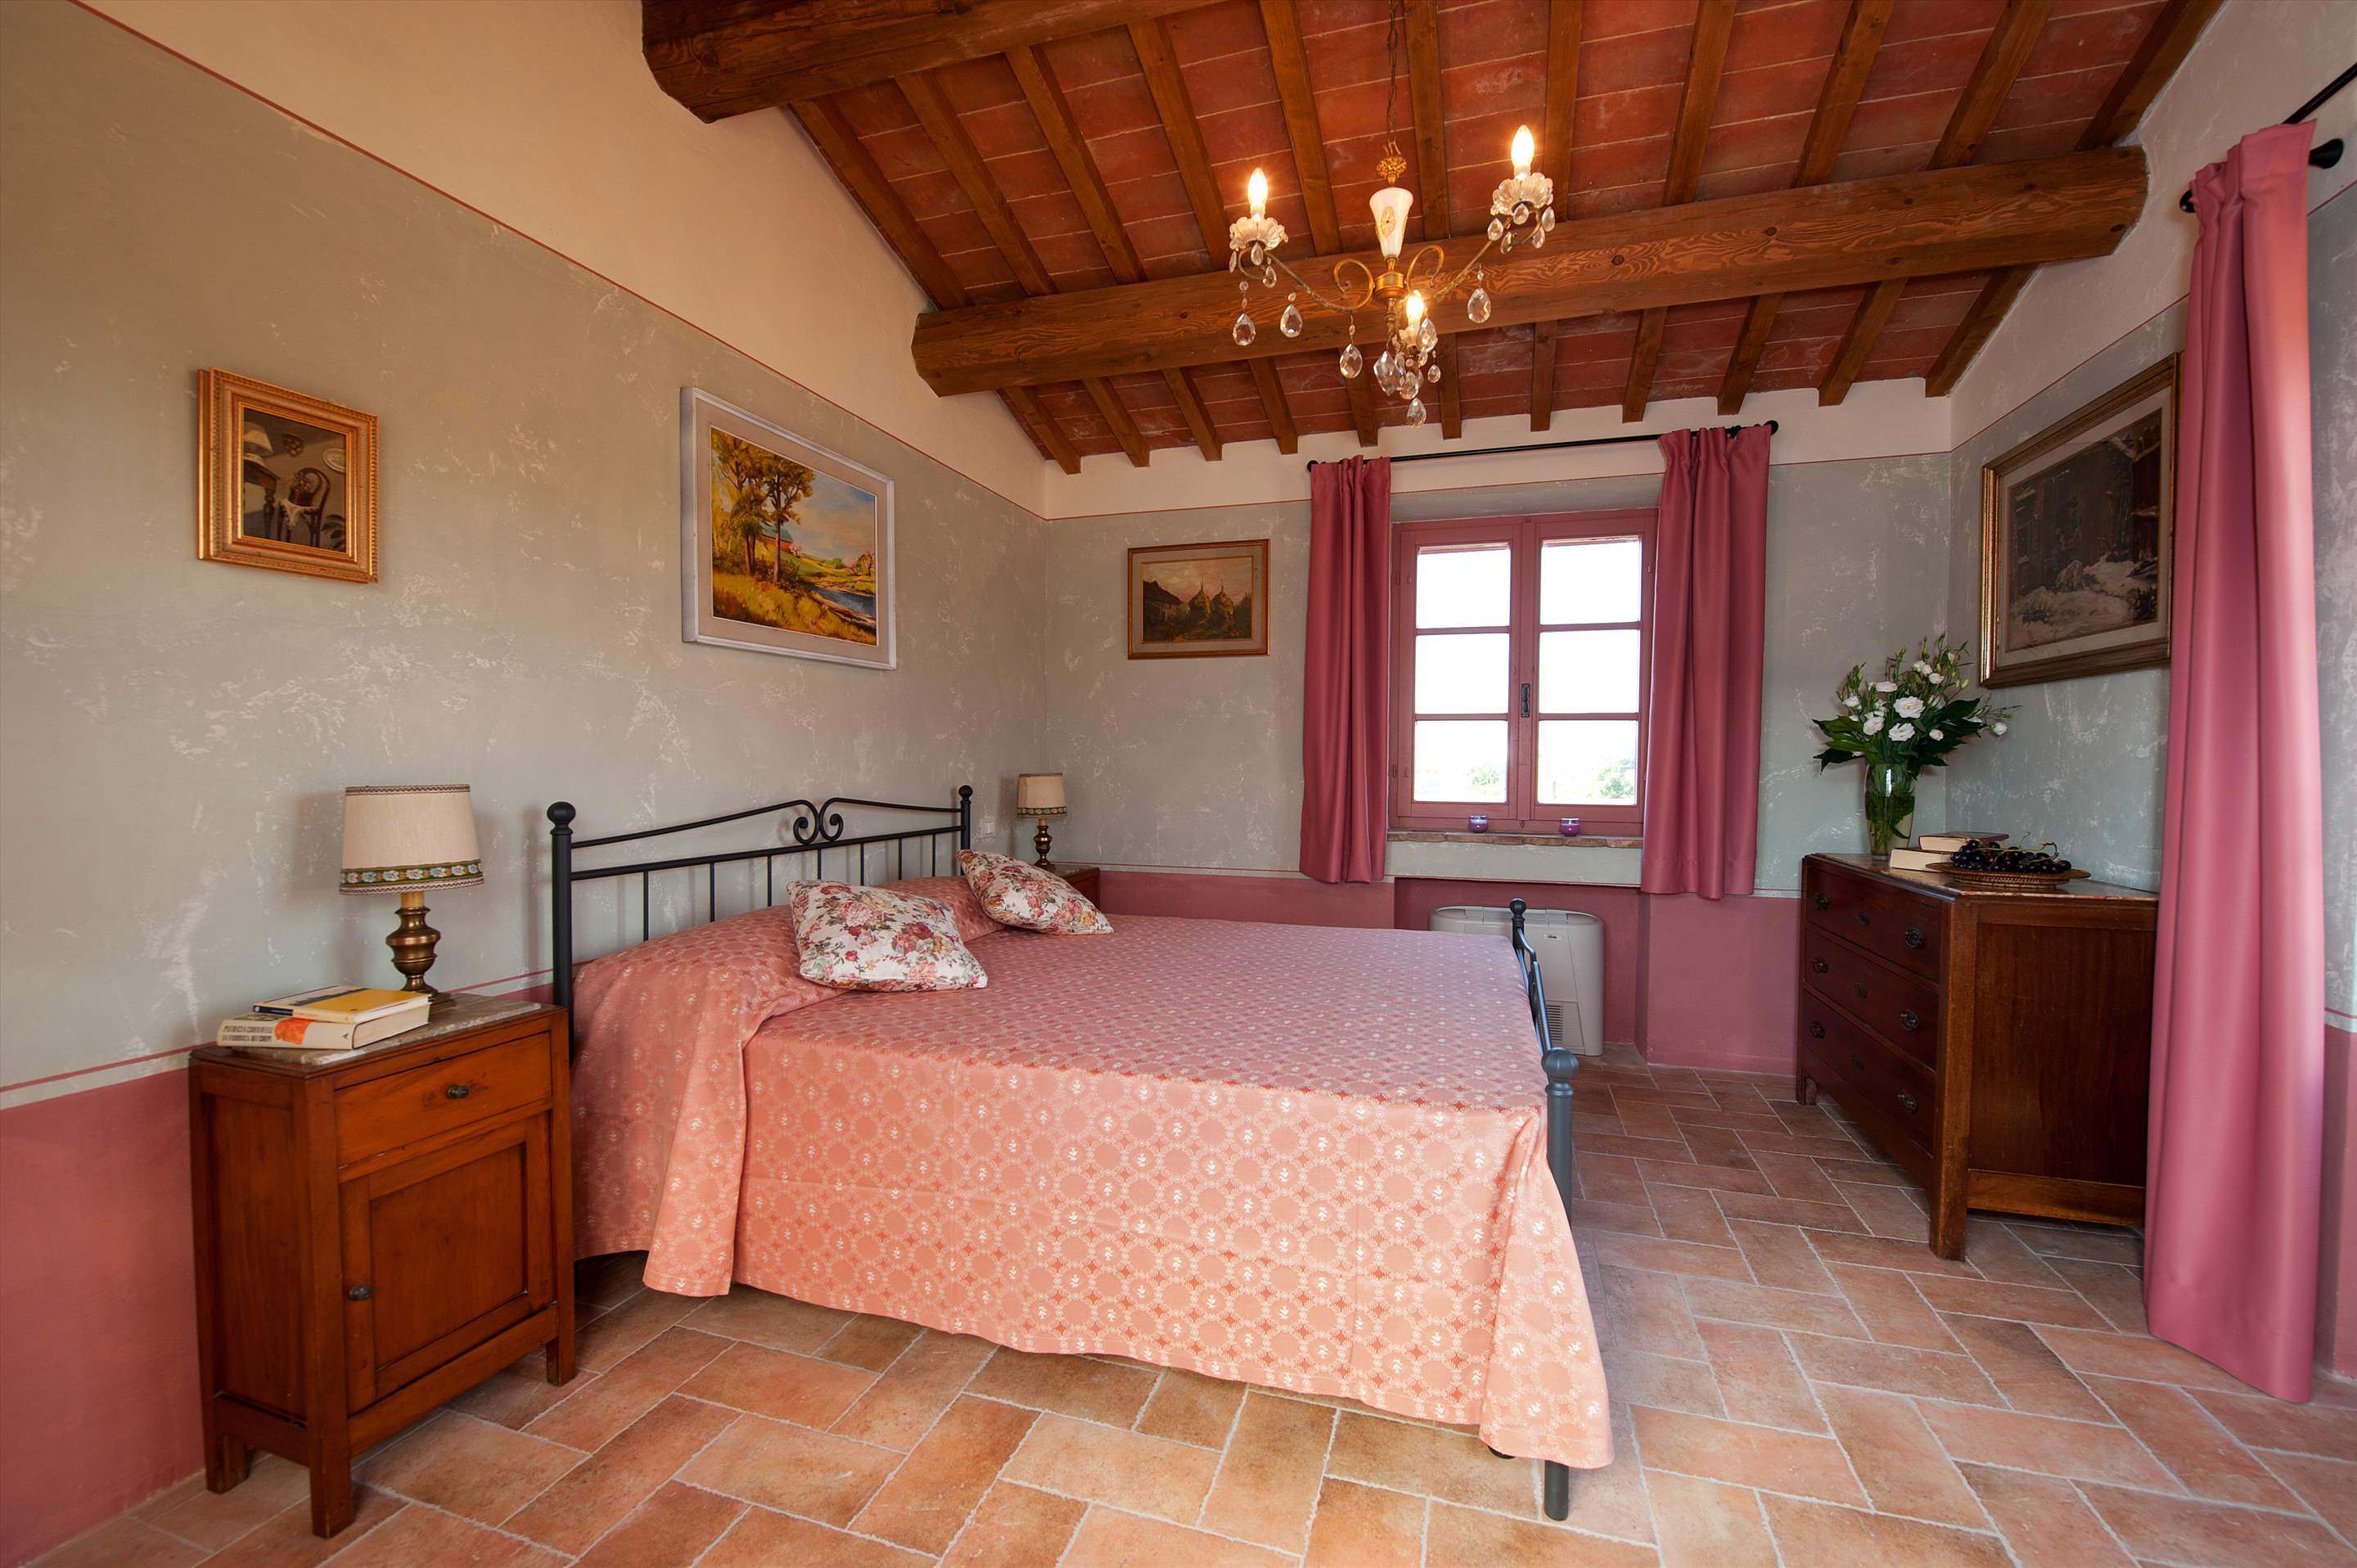 Podere I Gotti, 5 bedroom villa in Tuscany Coast, Tuscany Photo #19